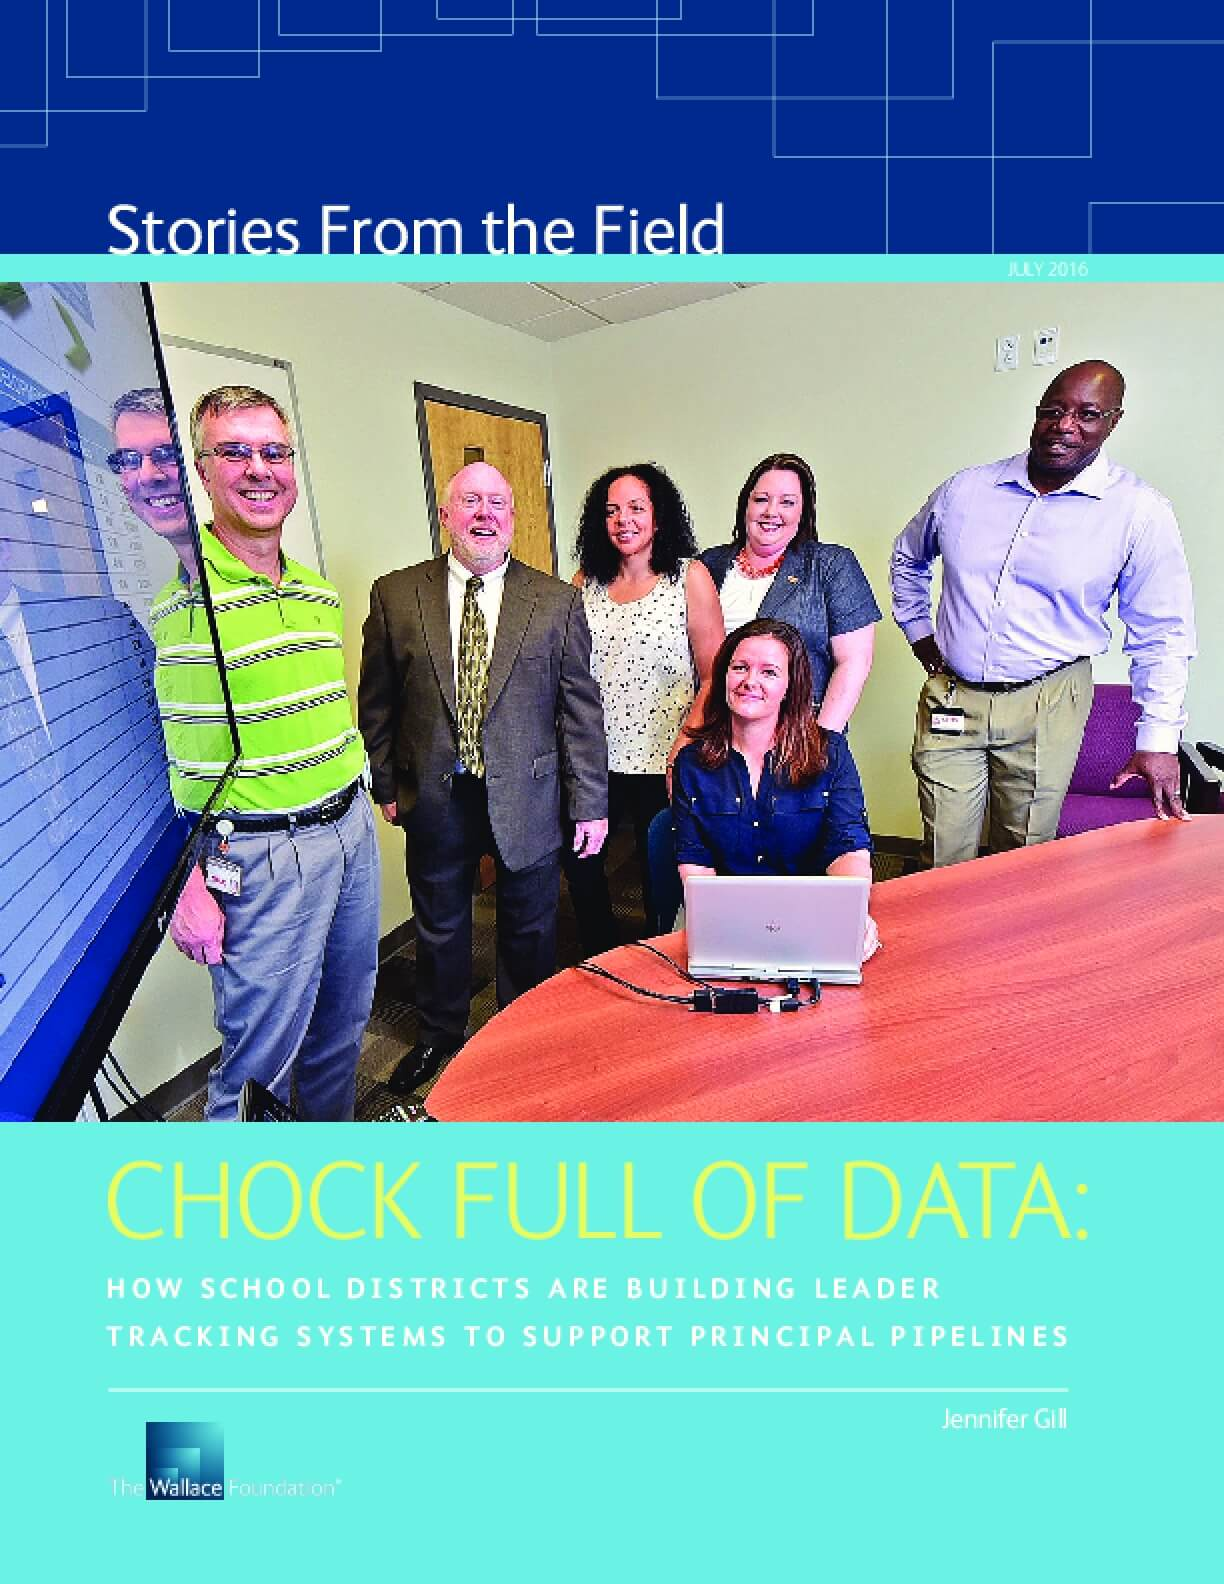 Chock Full of Data: How School Districts are Building Leader Tracking Systems to Support Pipelines